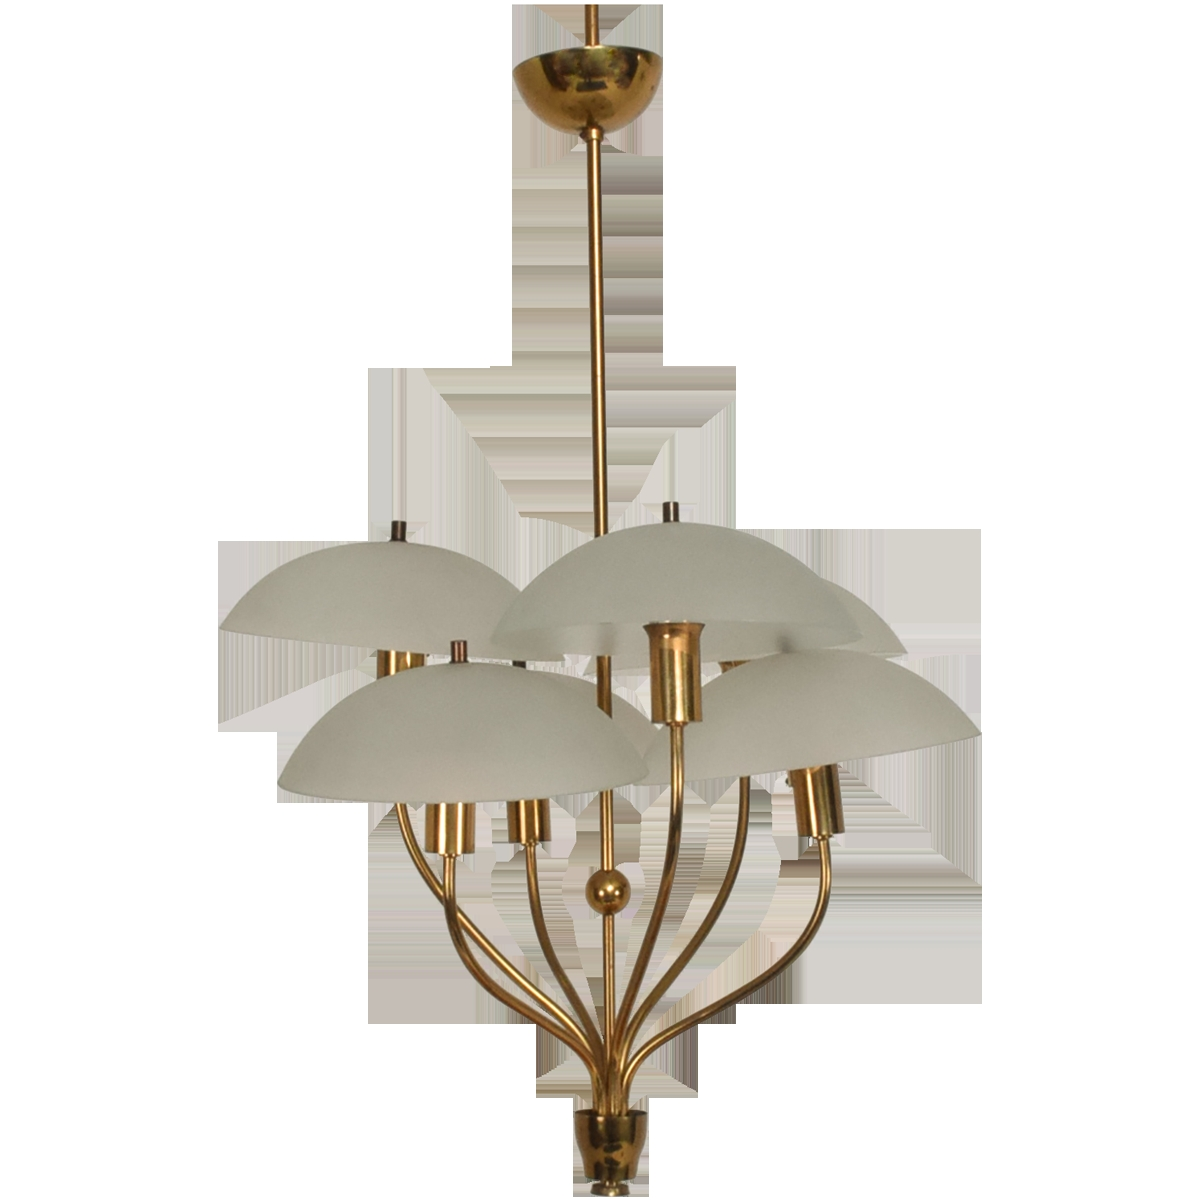 Viyet Designer Furniture Lighting Mid Century Modern Italian With Regard To Brass And Glass Chandelier (Image 15 of 15)